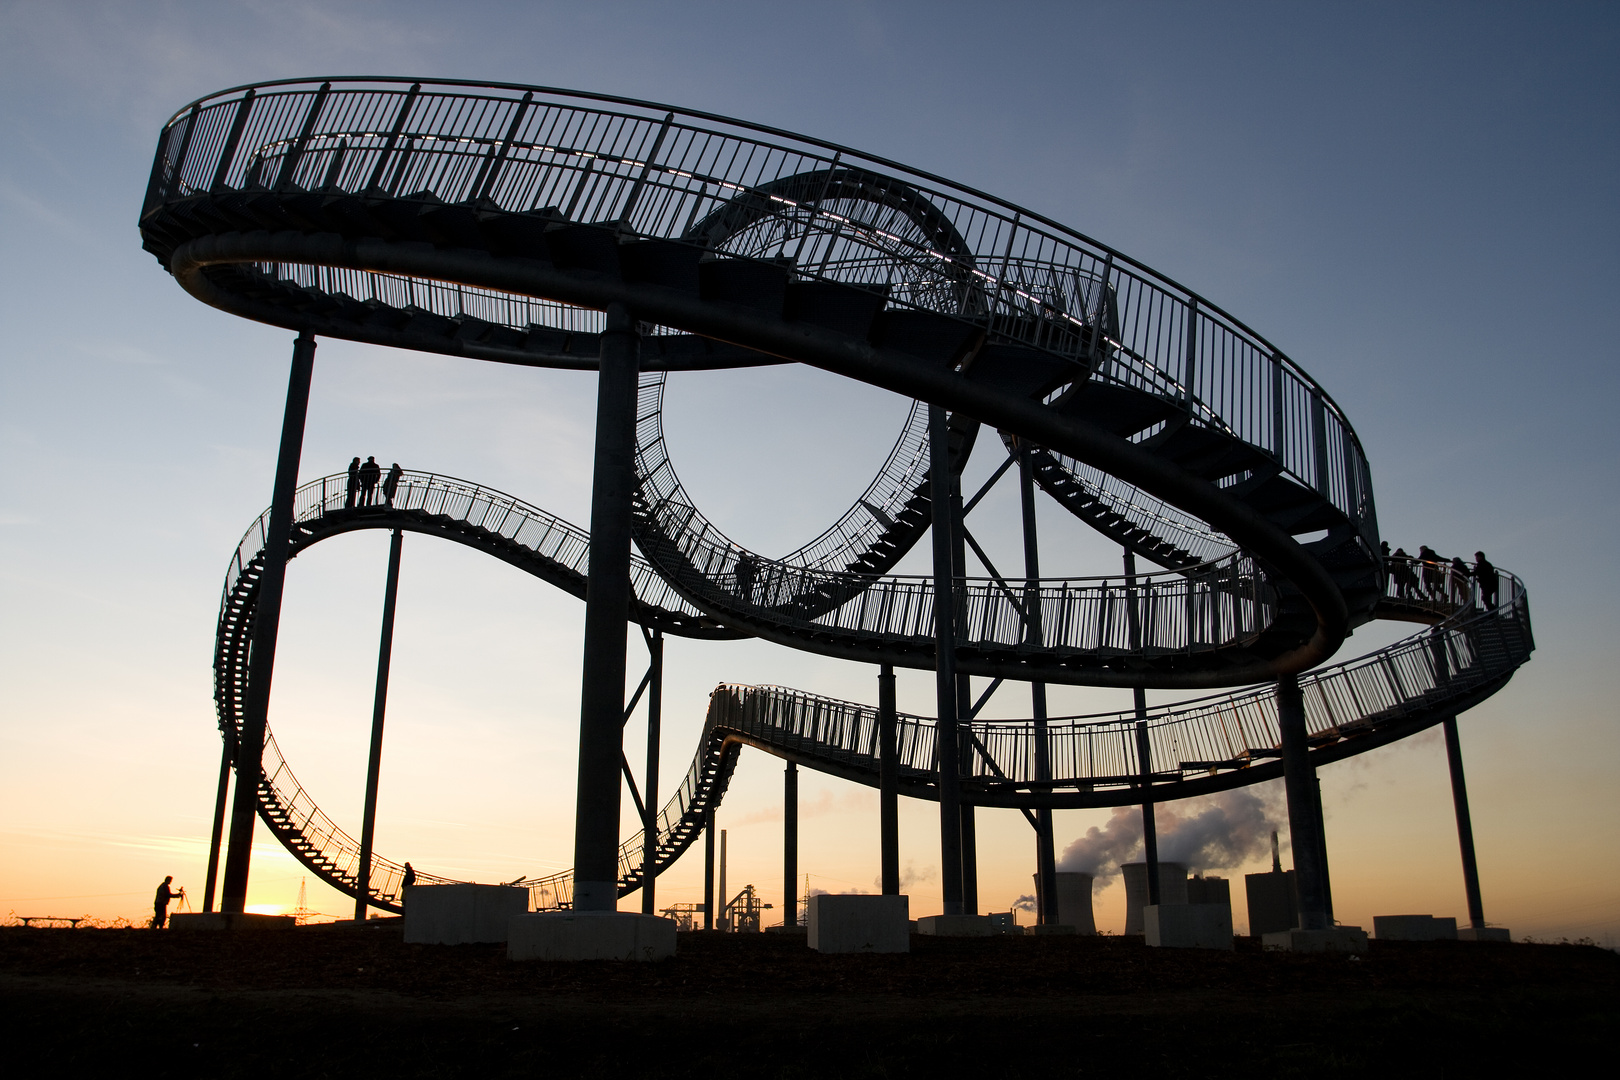 Tiger & Turtle 03